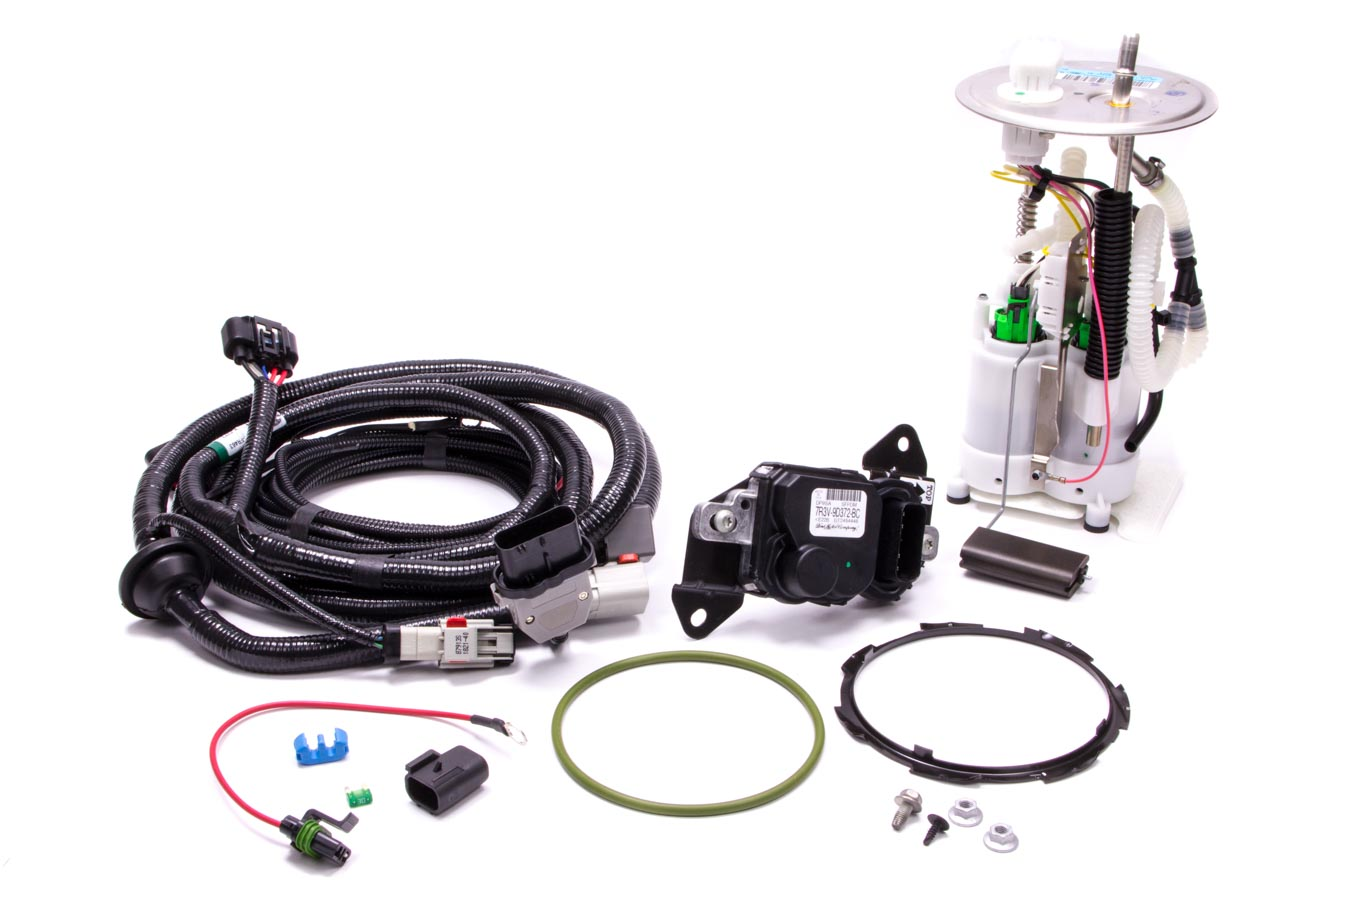 ford m 9407 msvta dual fuel pump kit 2010 mustang gt ebay. Black Bedroom Furniture Sets. Home Design Ideas